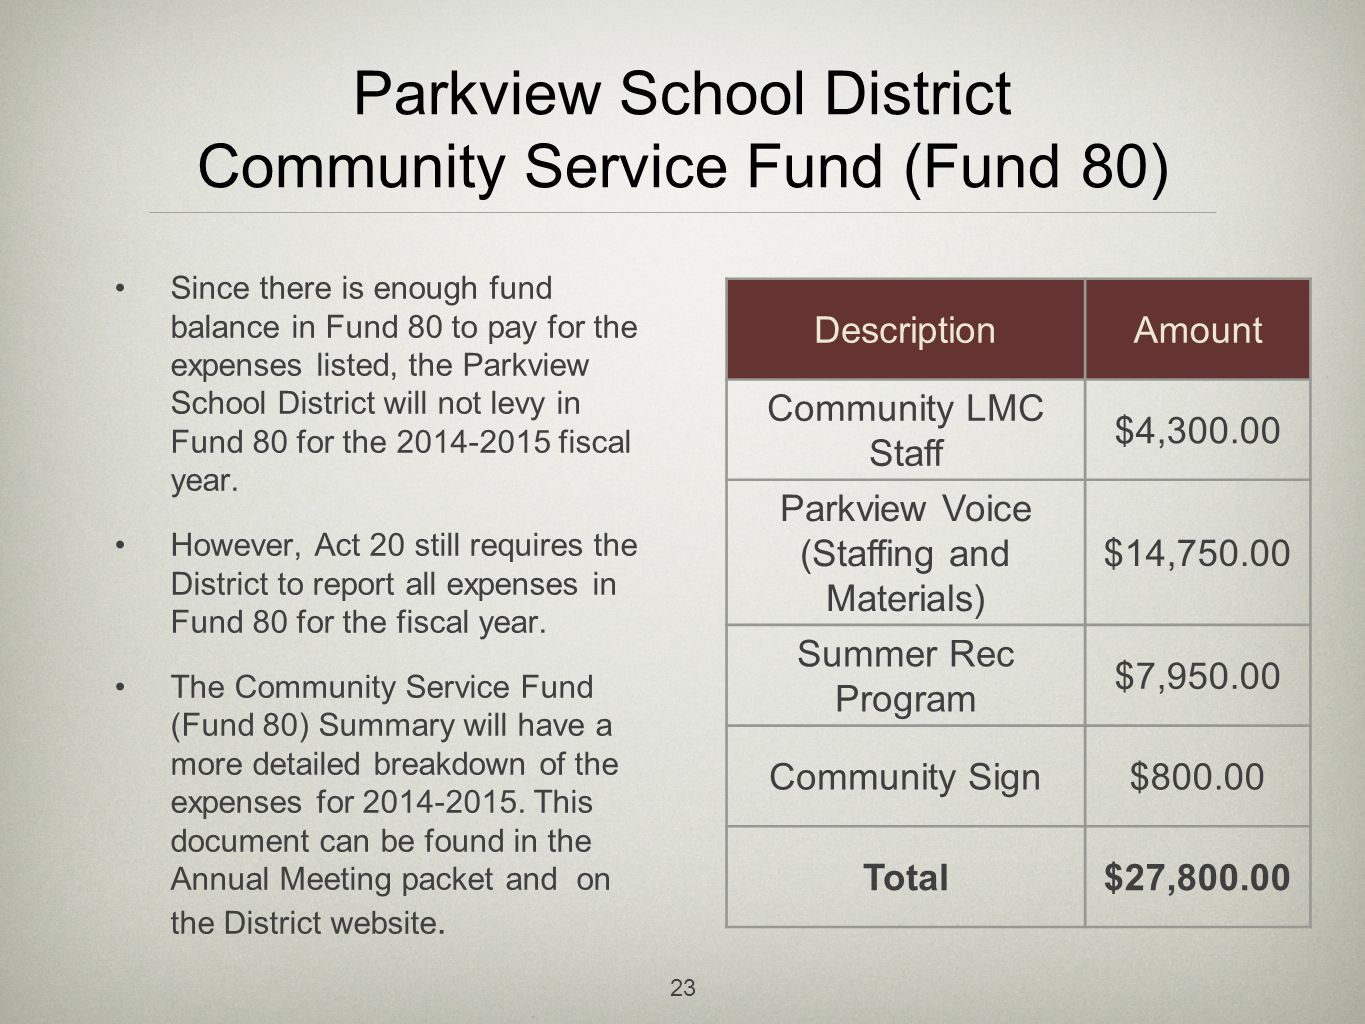 Parkview School District Community Service Fund (Fund 80) Since there is enough fund balance in Fund 80 to pay for the expenses listed, the Parkview School District will not levy in Fund 80 for the 2014-2015 fiscal year.